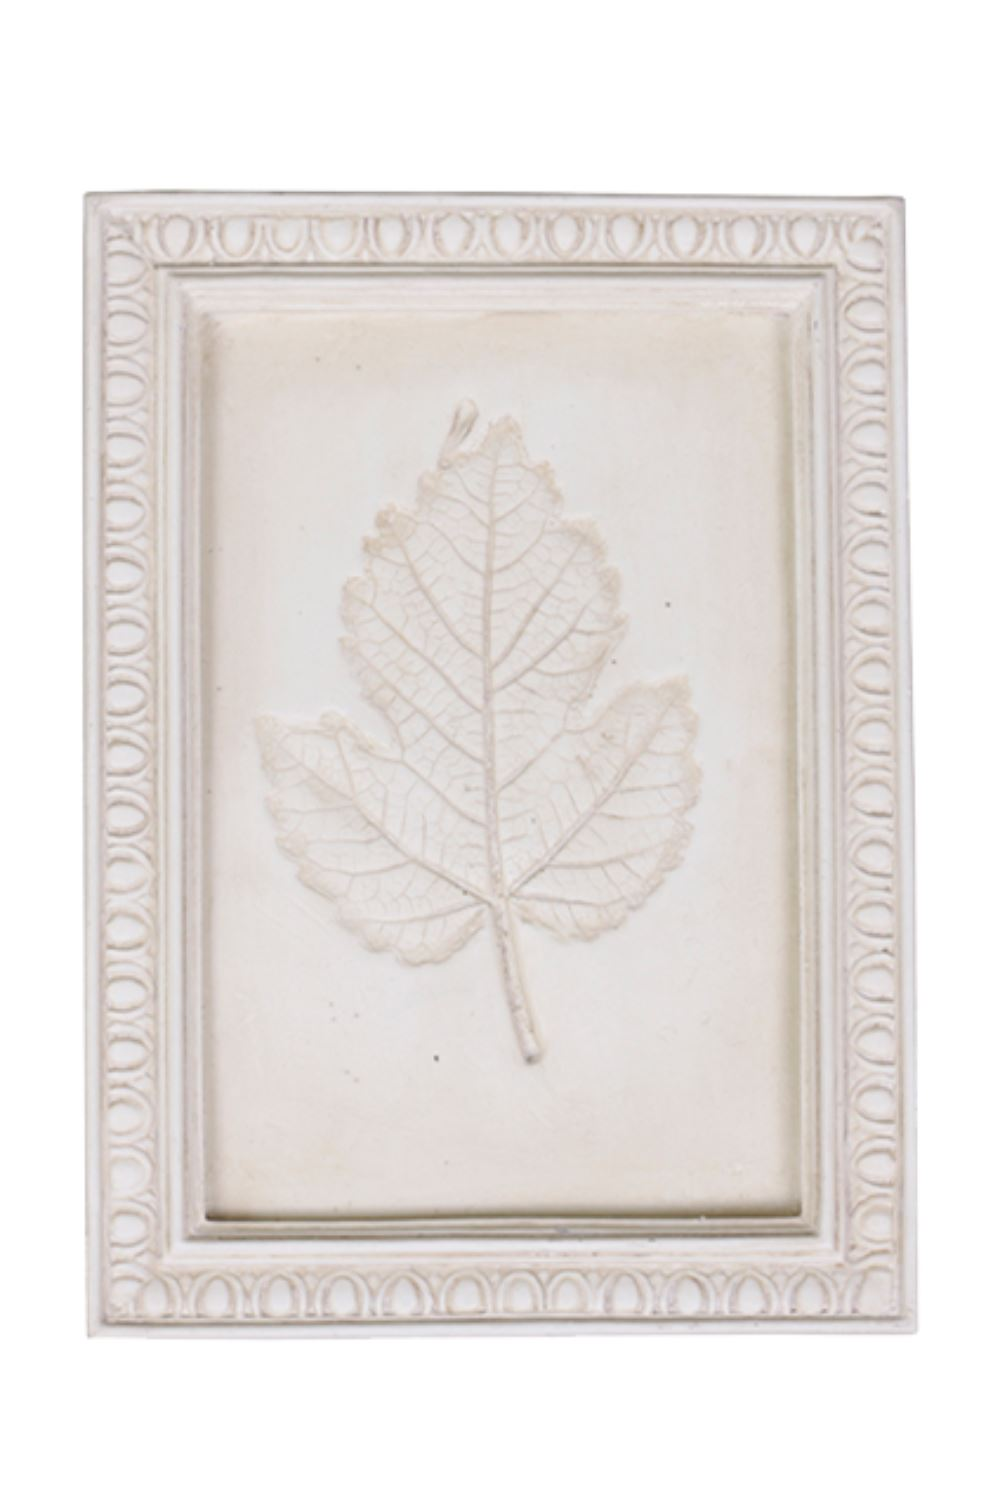 Leaf Relief Plaster Artwork - Small Artwork Blume